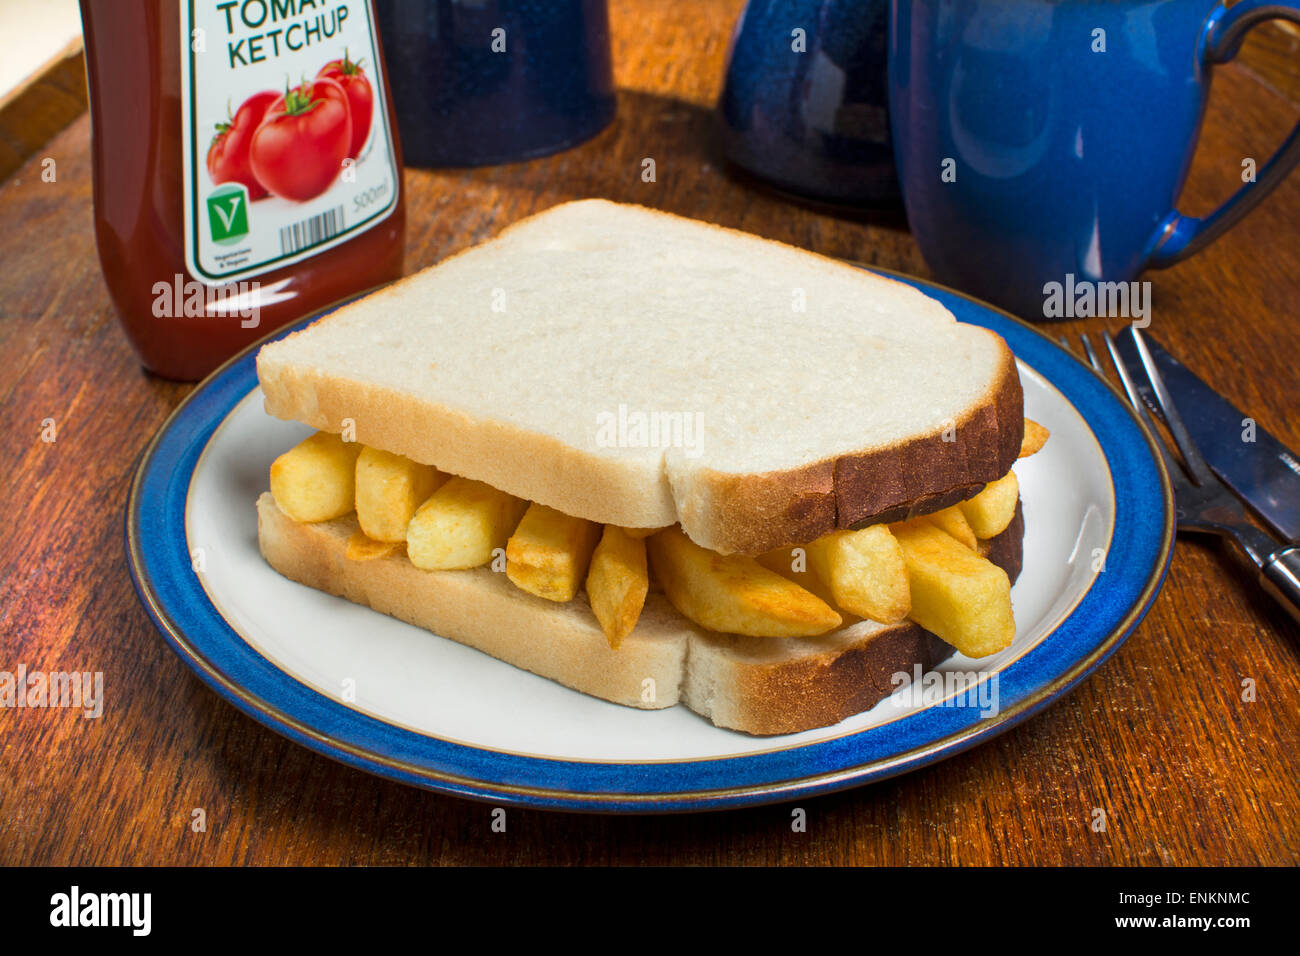 A potato chips sandwich, commonly known as a chip butty in the UK - Stock Image